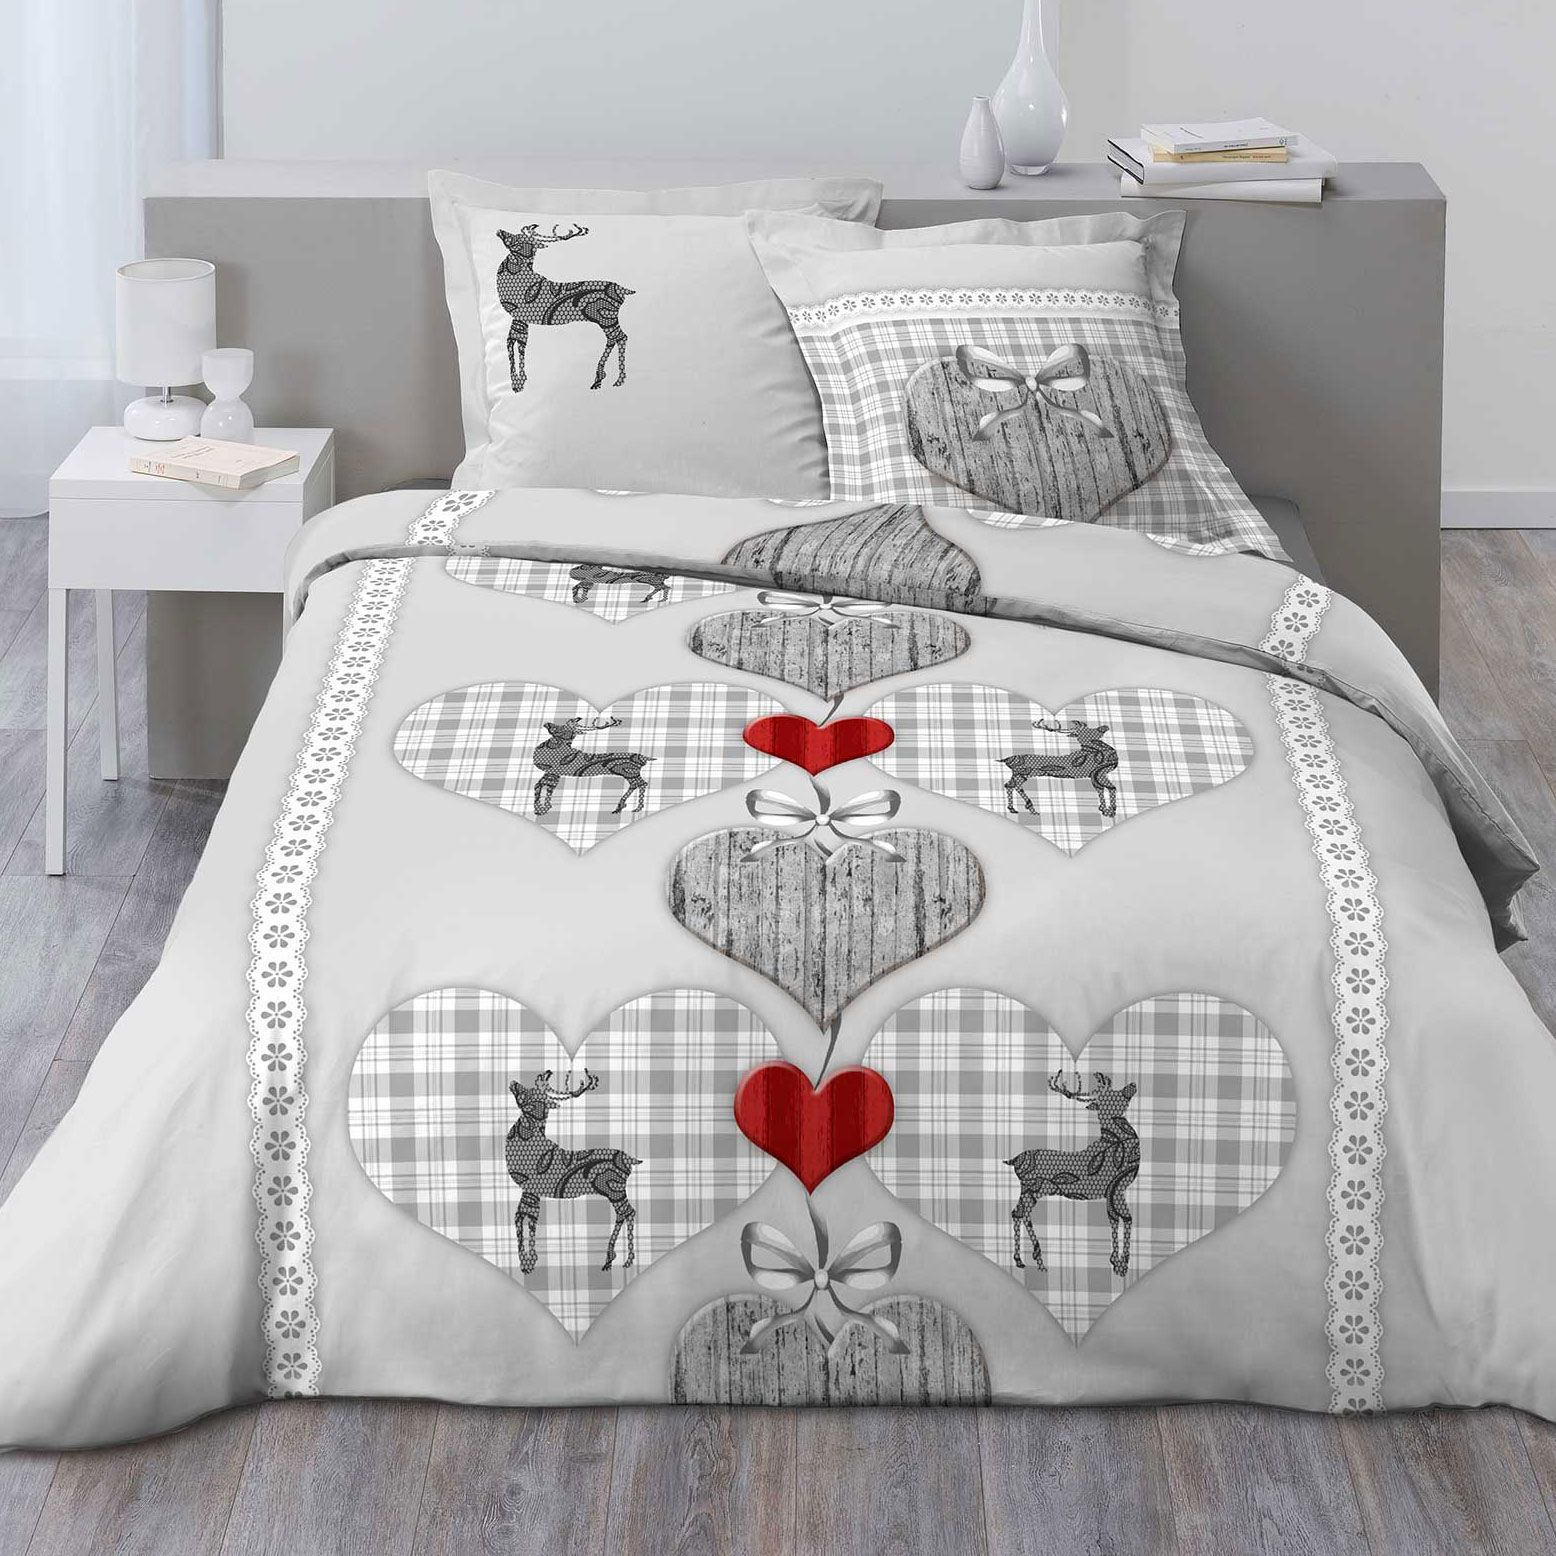 housse de couette et deux taies 100 flanelle de coton 260 cm coeur vichy gris housse de. Black Bedroom Furniture Sets. Home Design Ideas